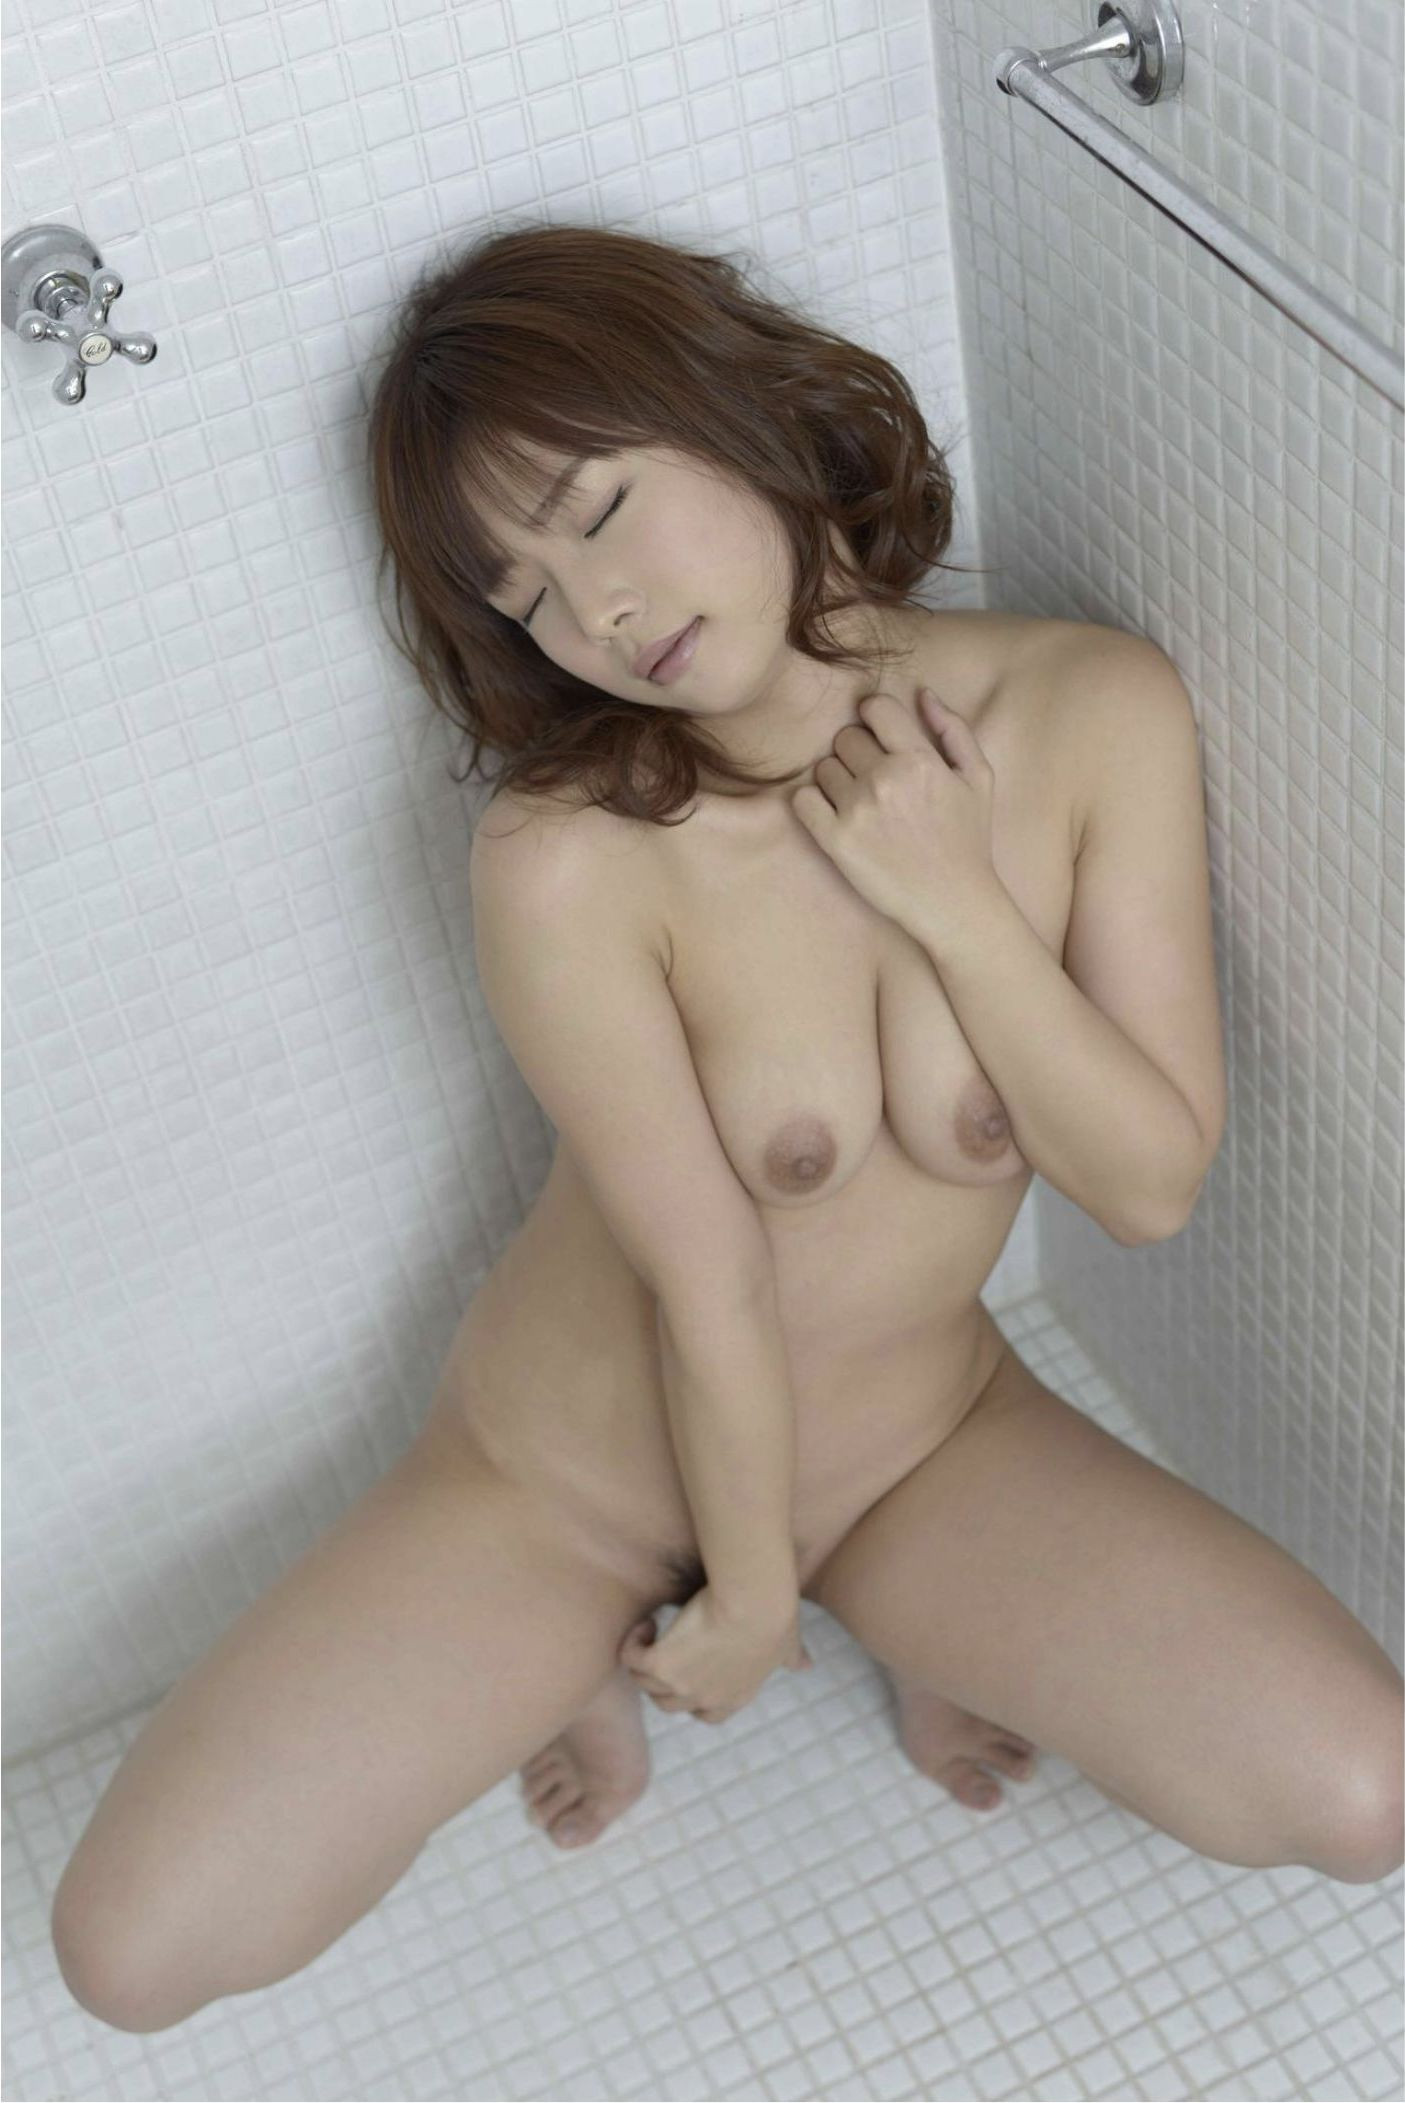 SOFT ON DEMAND GRAVURE COLLECTION 紗倉まな02 photo 128